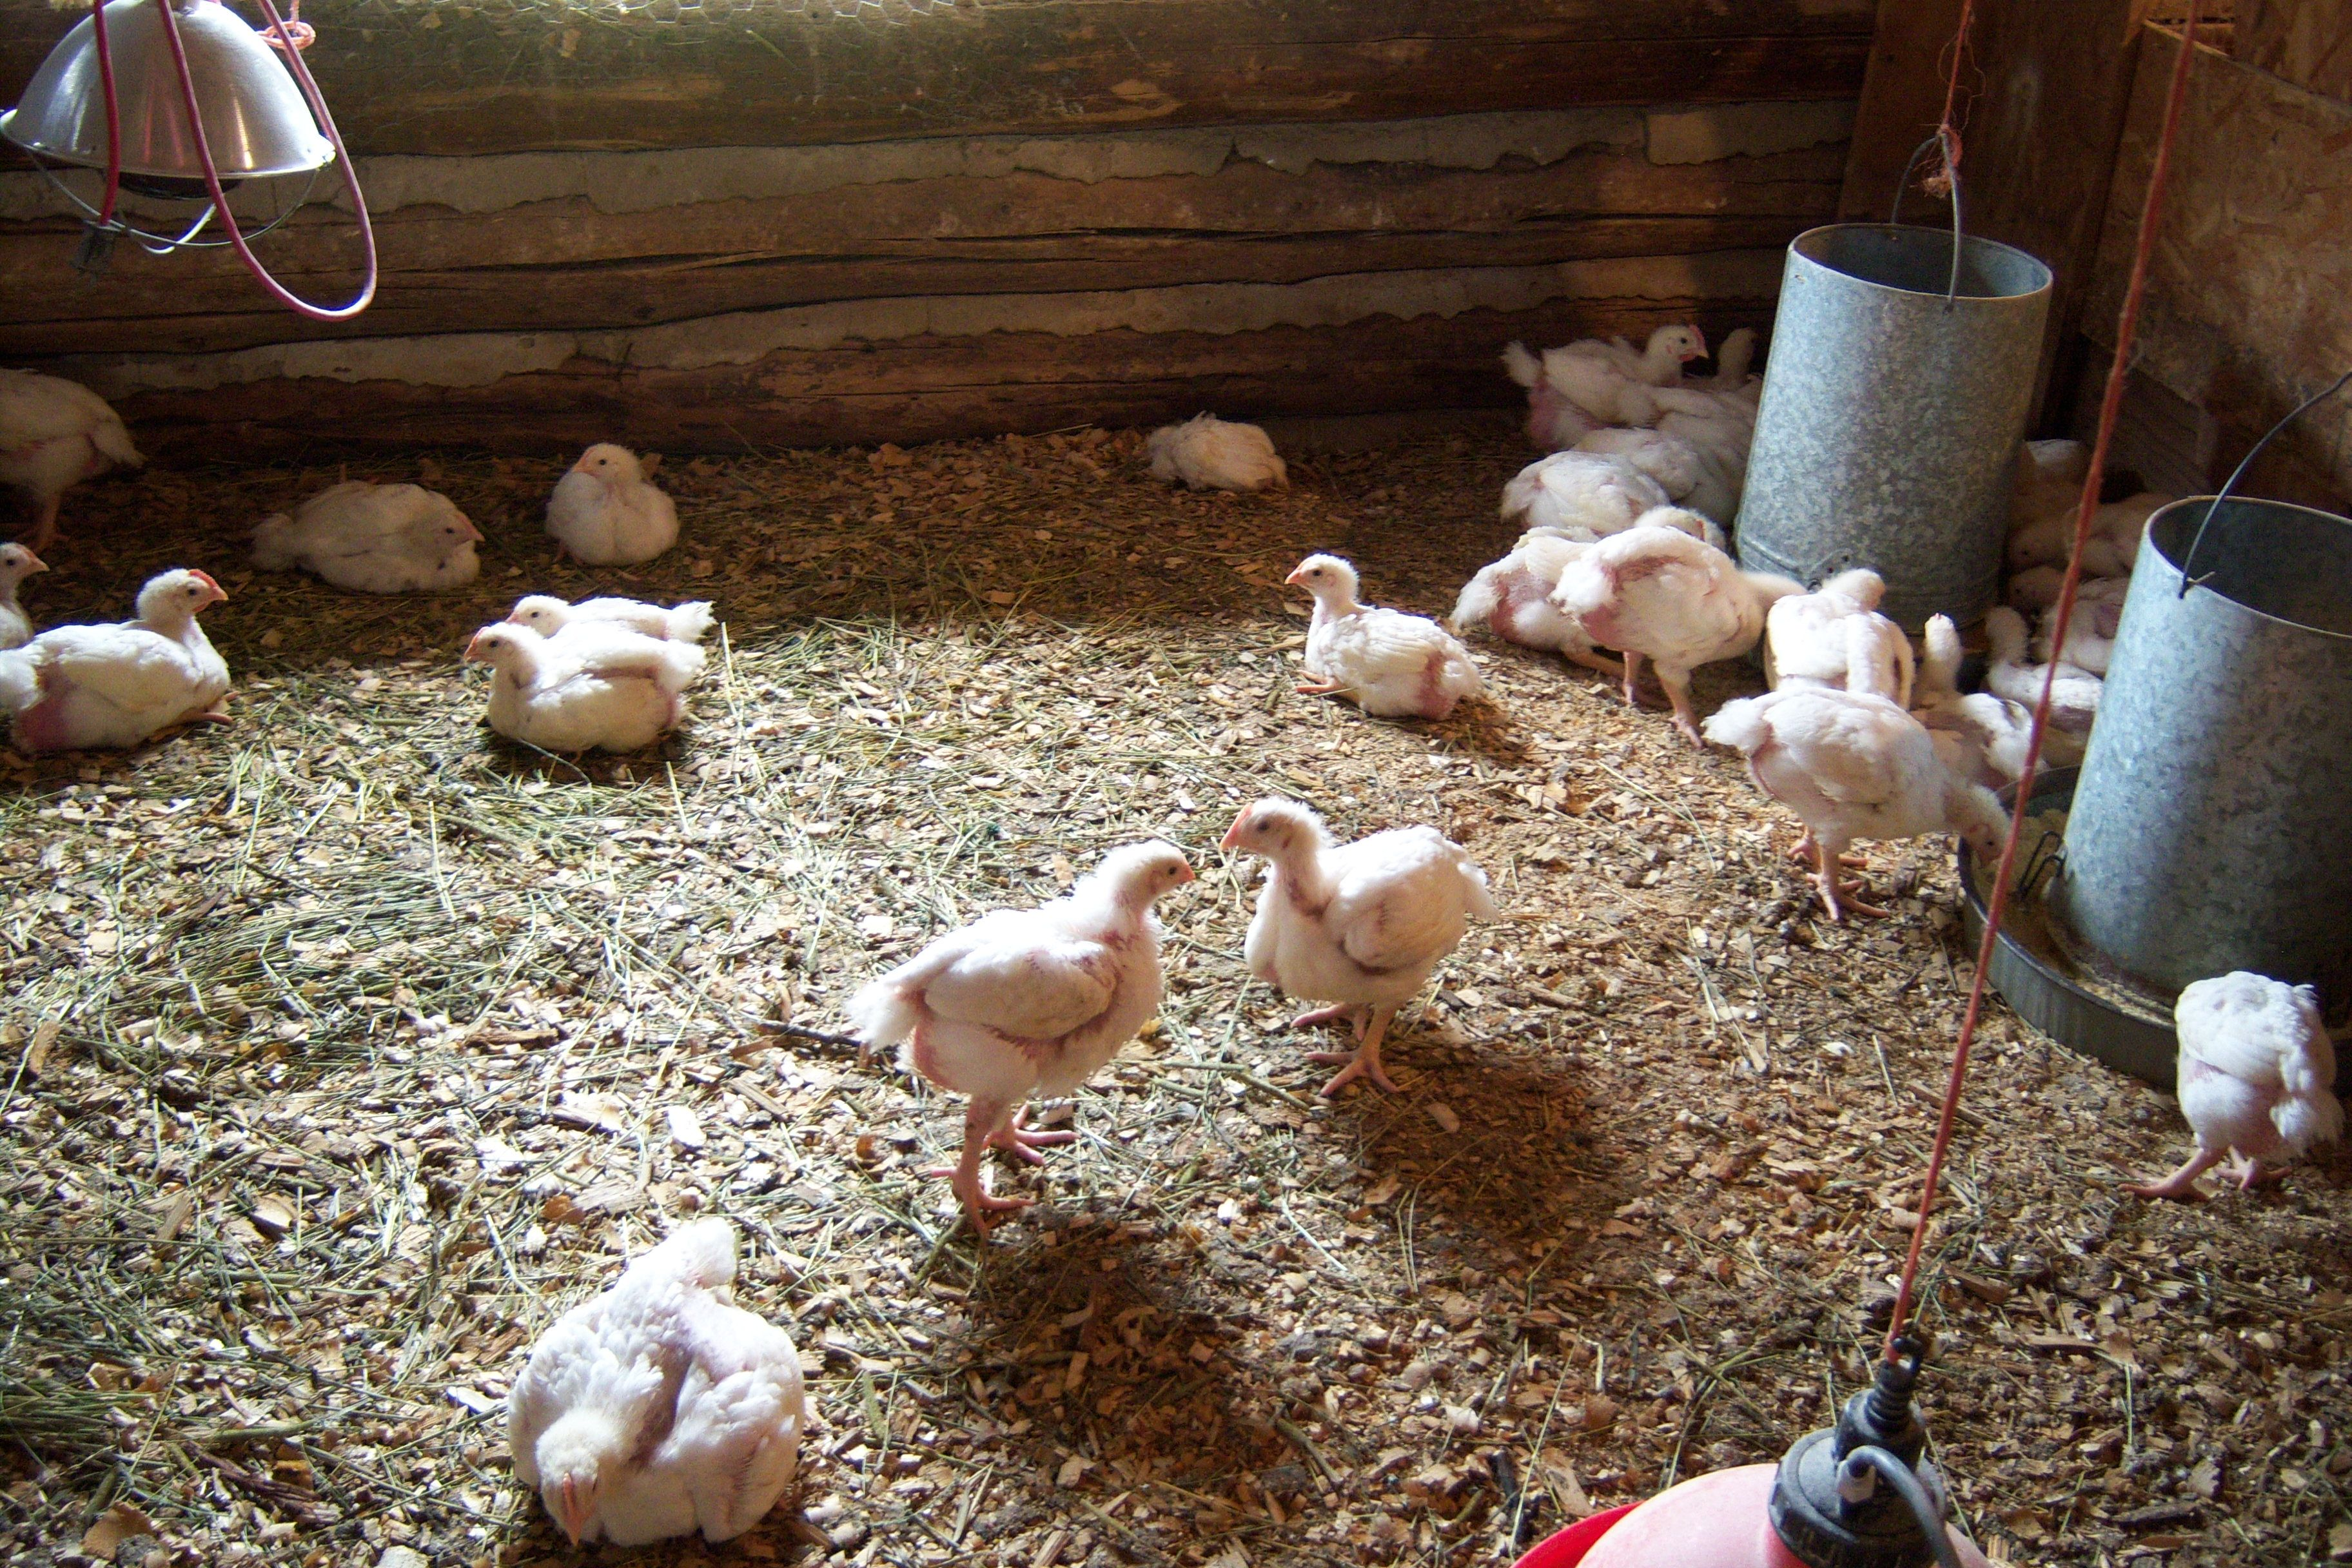 Find out where to get information about everything you need to know to raise chickens on a small to medium scale, and learn about poultry processing options too.     1) Introduction; 2) Where to go for Information; 3) Books and Articles; 4) Information on small scale poultry processing 1) Raising chickens is becoming more and more popular with small farmers, urban farmers, homesteaders, others. Many people are realizing that the difference between pasture raised chicken meat and eggs, and…